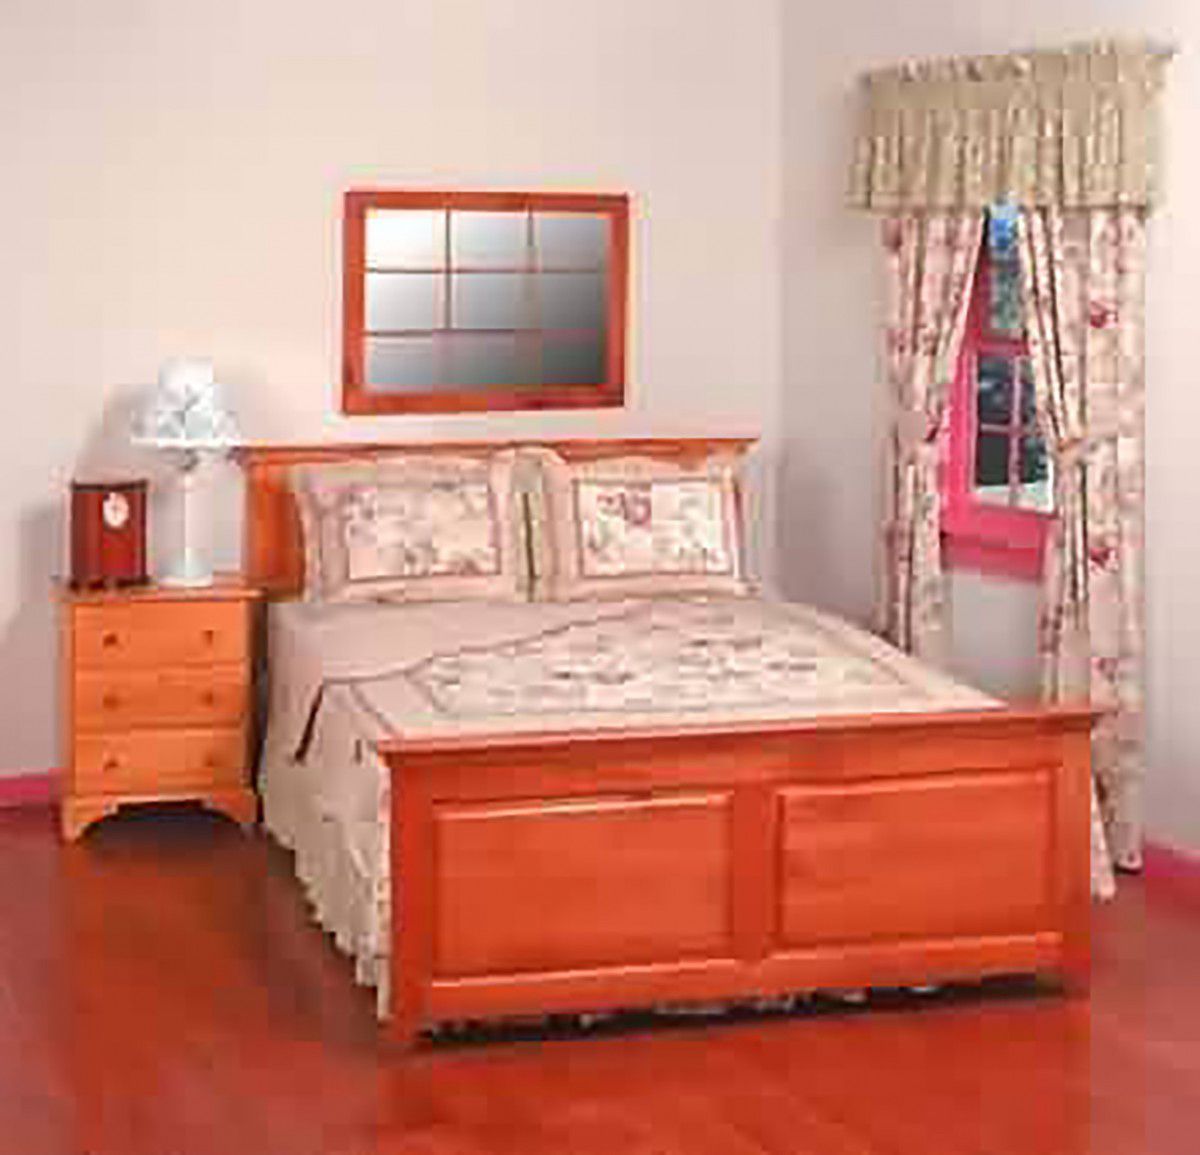 Footboard Unfinished Pine Queen Footboard Wood Footboards Footboard Wood Footboard Bed Footboard